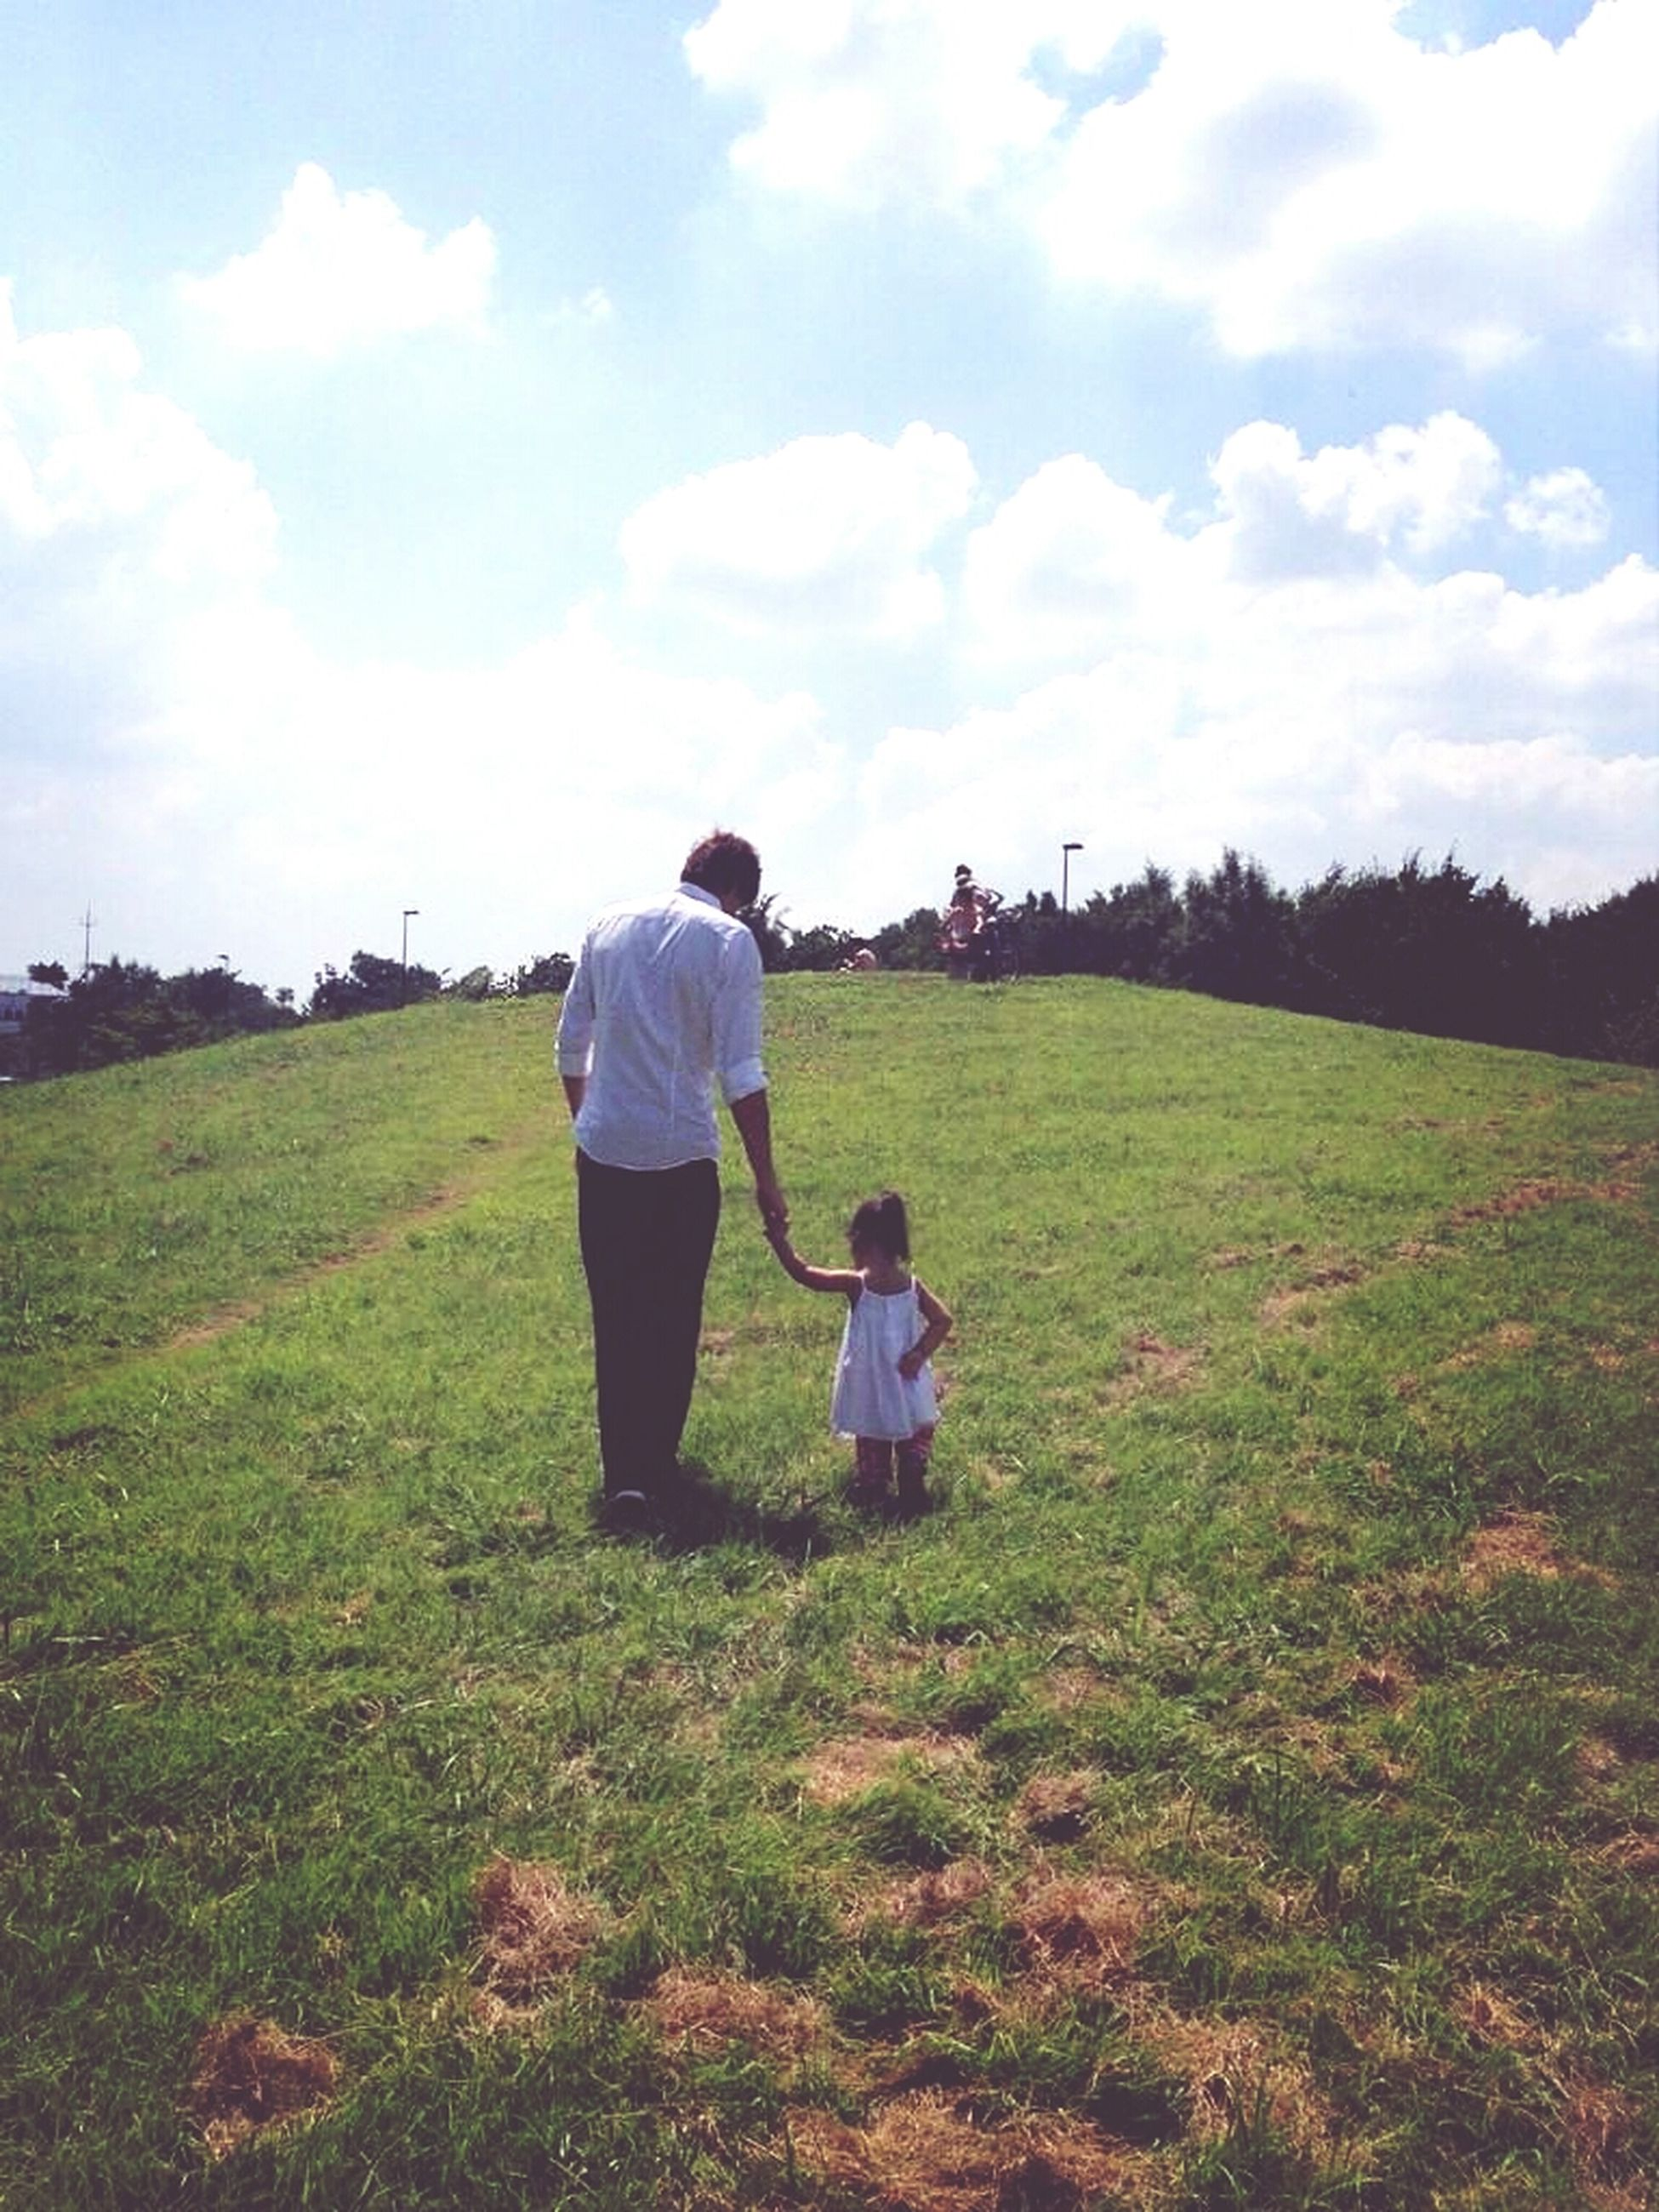 grass, sky, rear view, lifestyles, leisure activity, full length, field, casual clothing, landscape, cloud - sky, men, green color, grassy, nature, tranquil scene, tranquility, person, beauty in nature